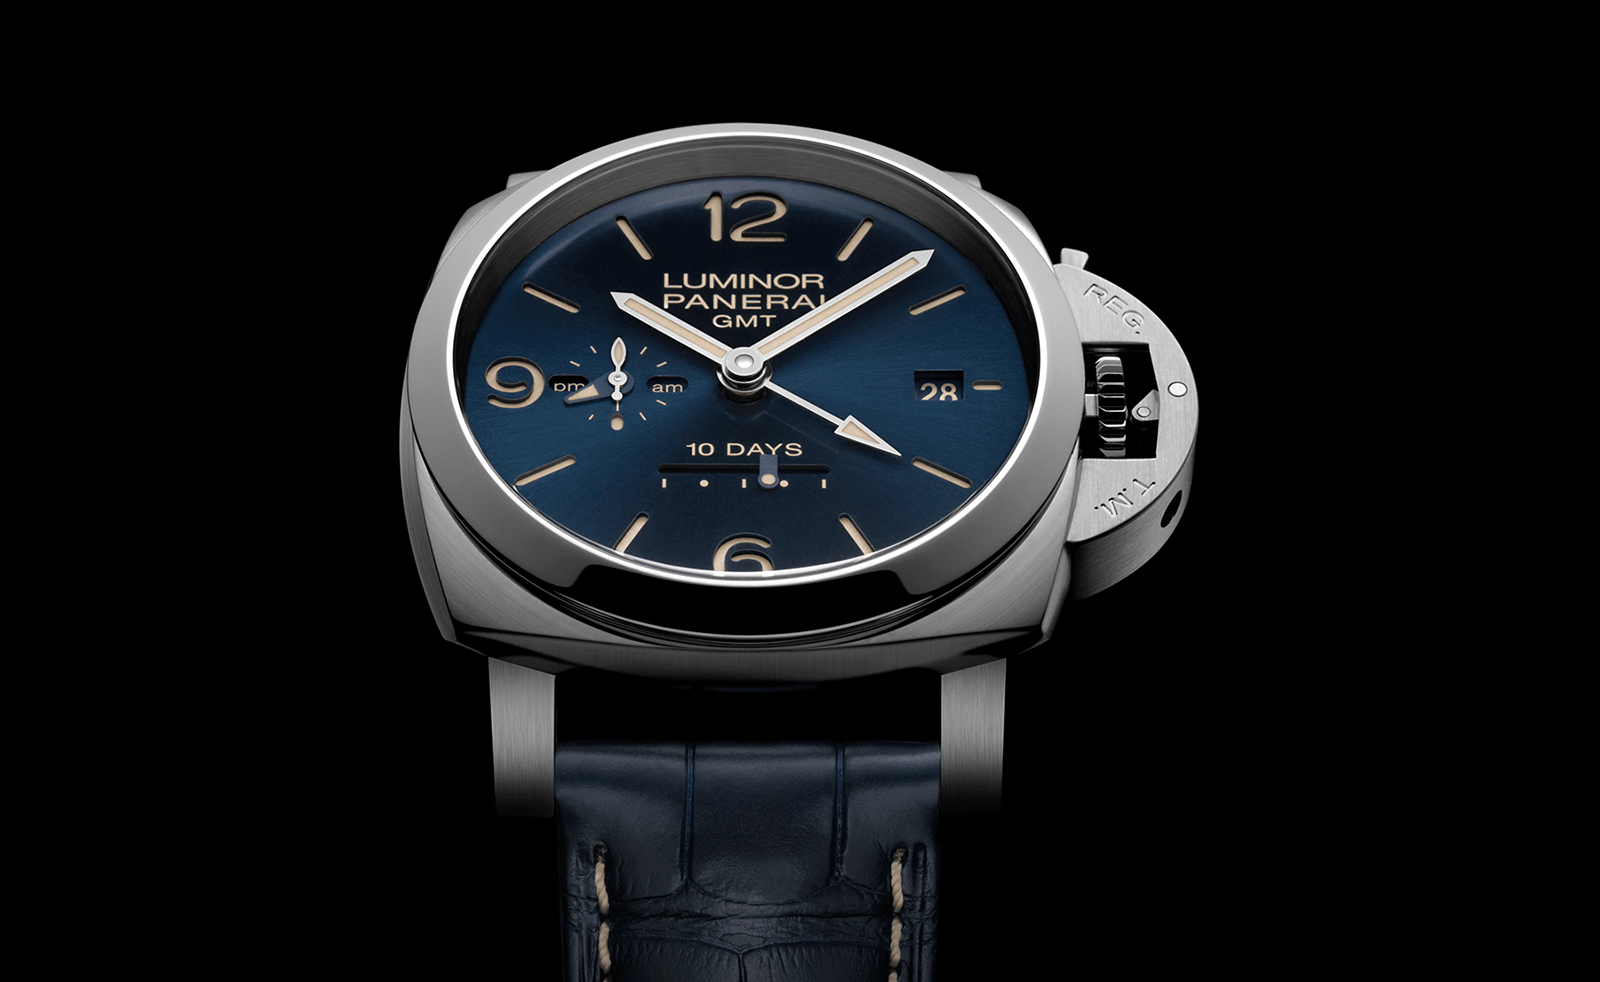 The Panerai Luminor 1950 GMT PAM00986 has a 10-day power reserve, more than ample for regular use. But not all watches are blessed with such assets.